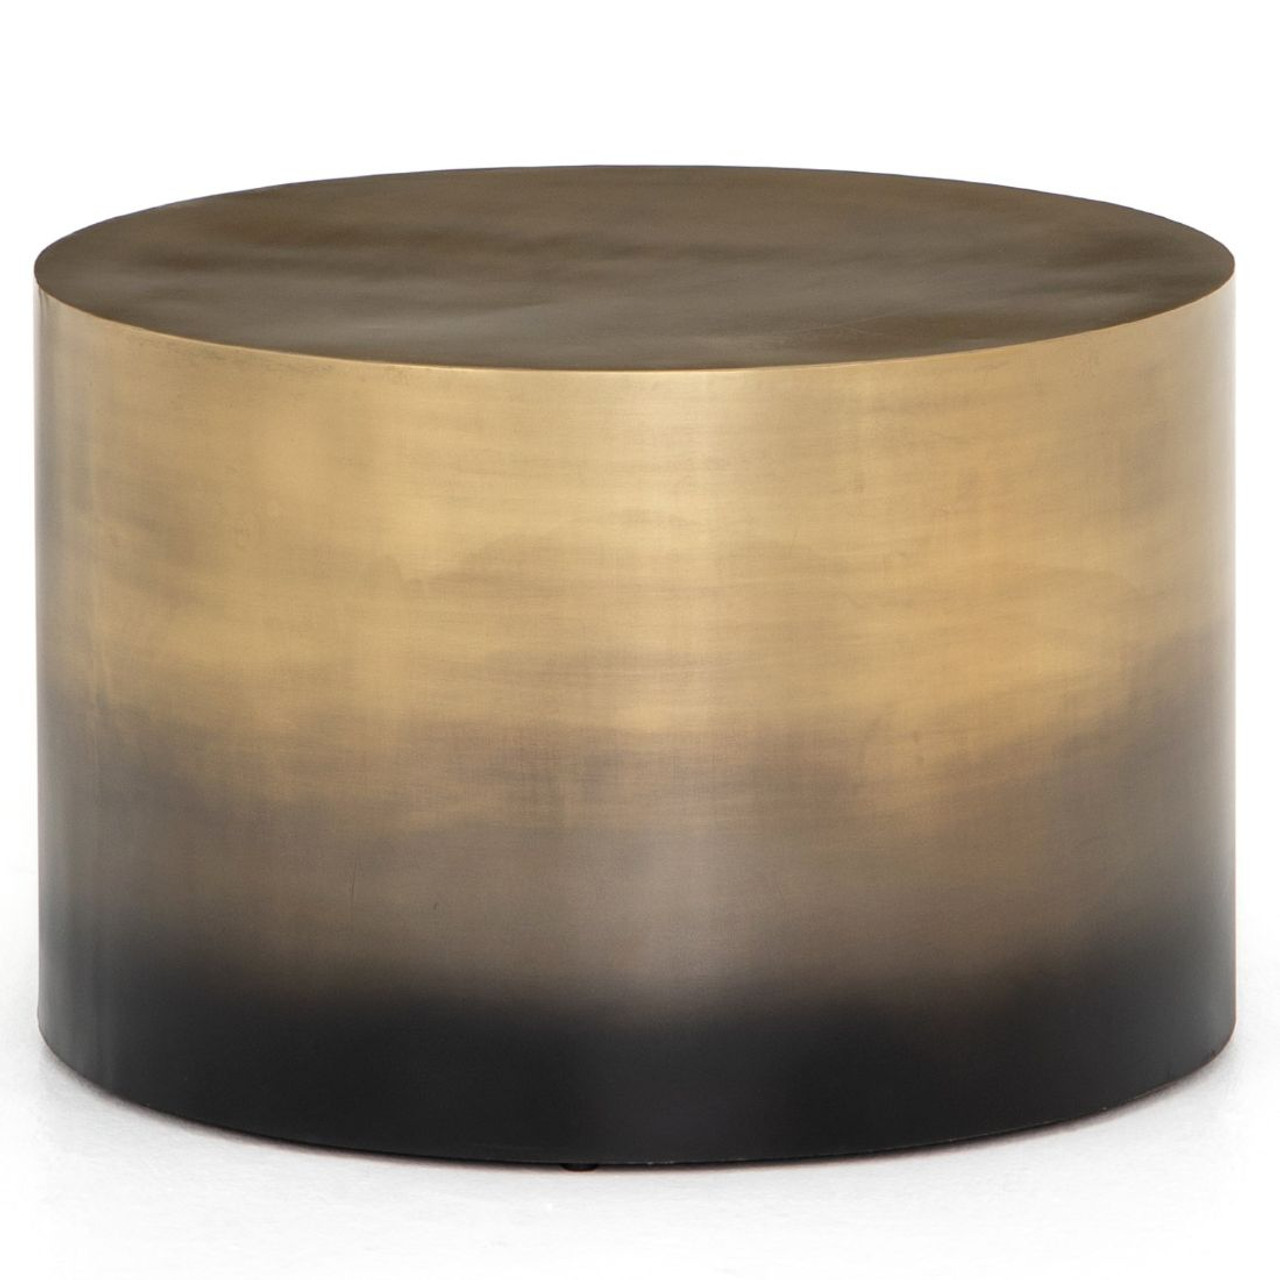 Cameron Brass Ombre Bunching Drum Coffee Table 25 Zin Home